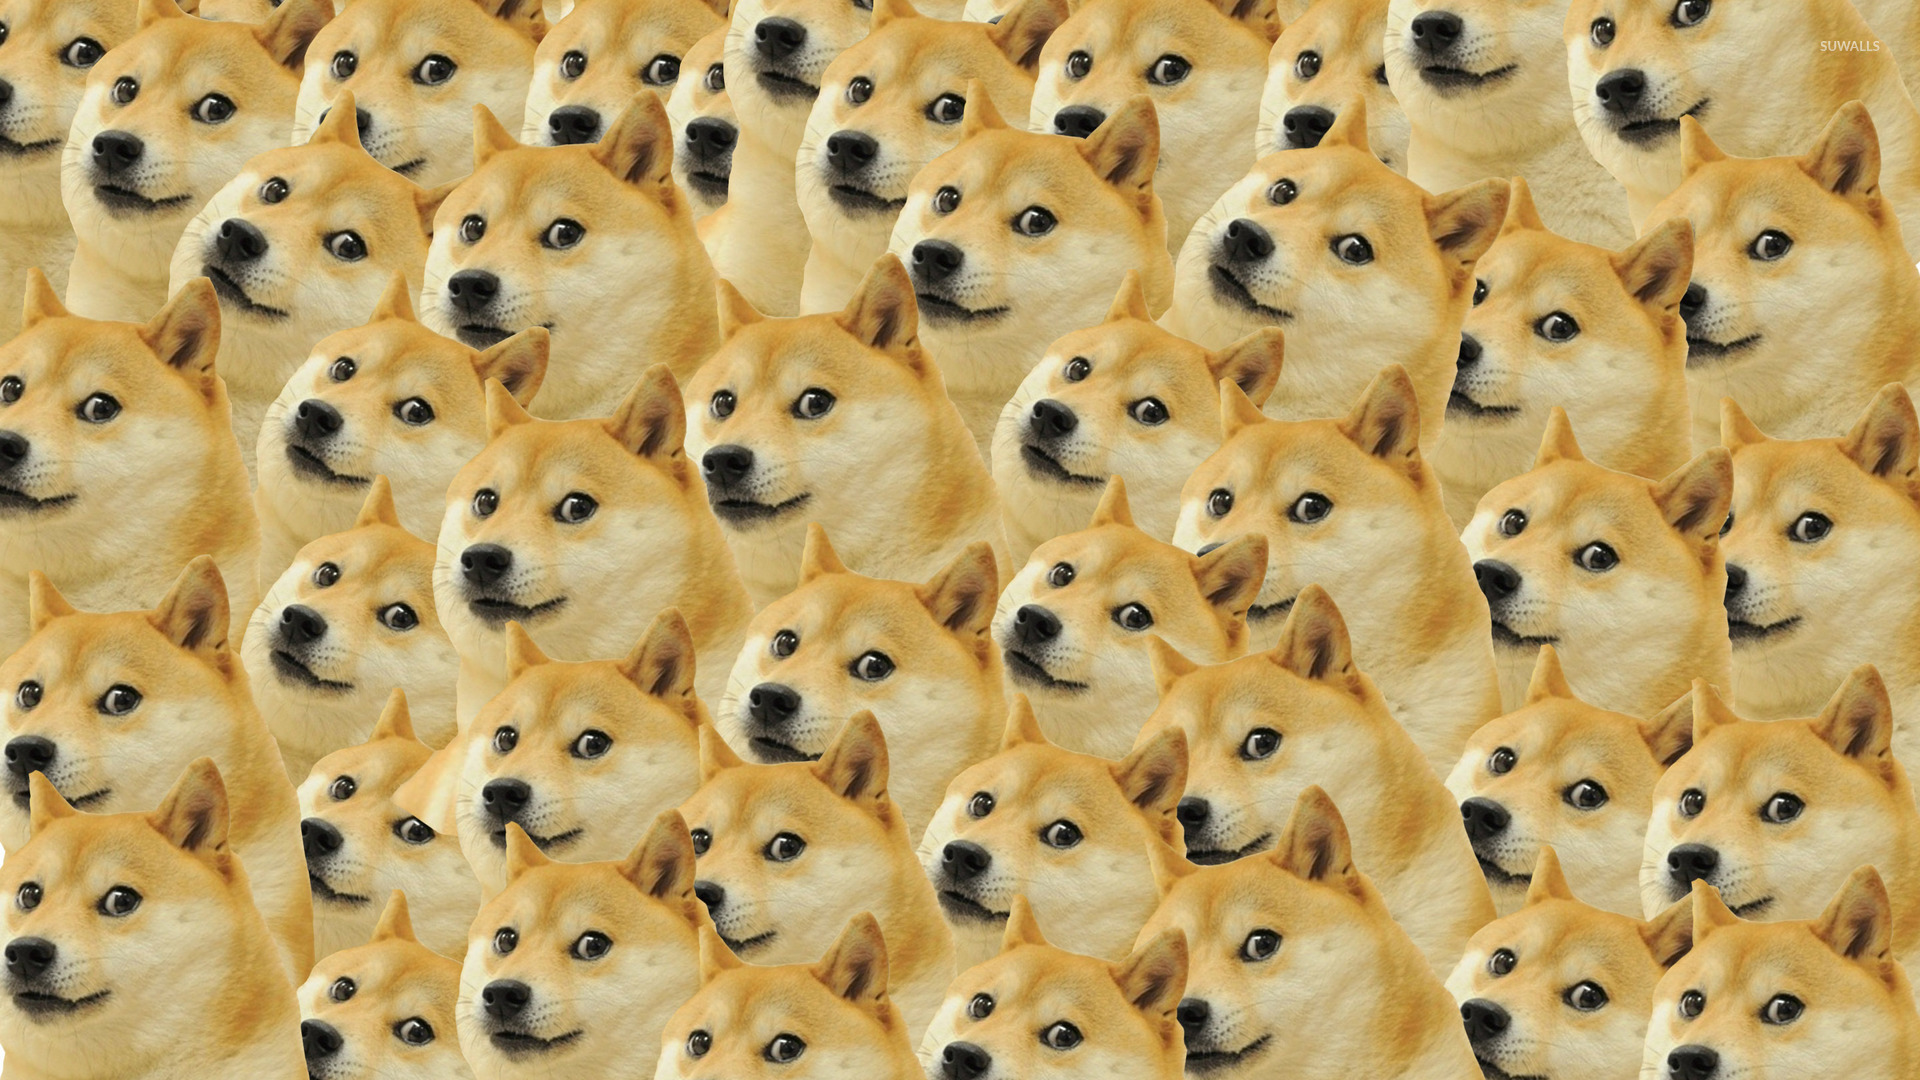 Doge Meme Wallpaper